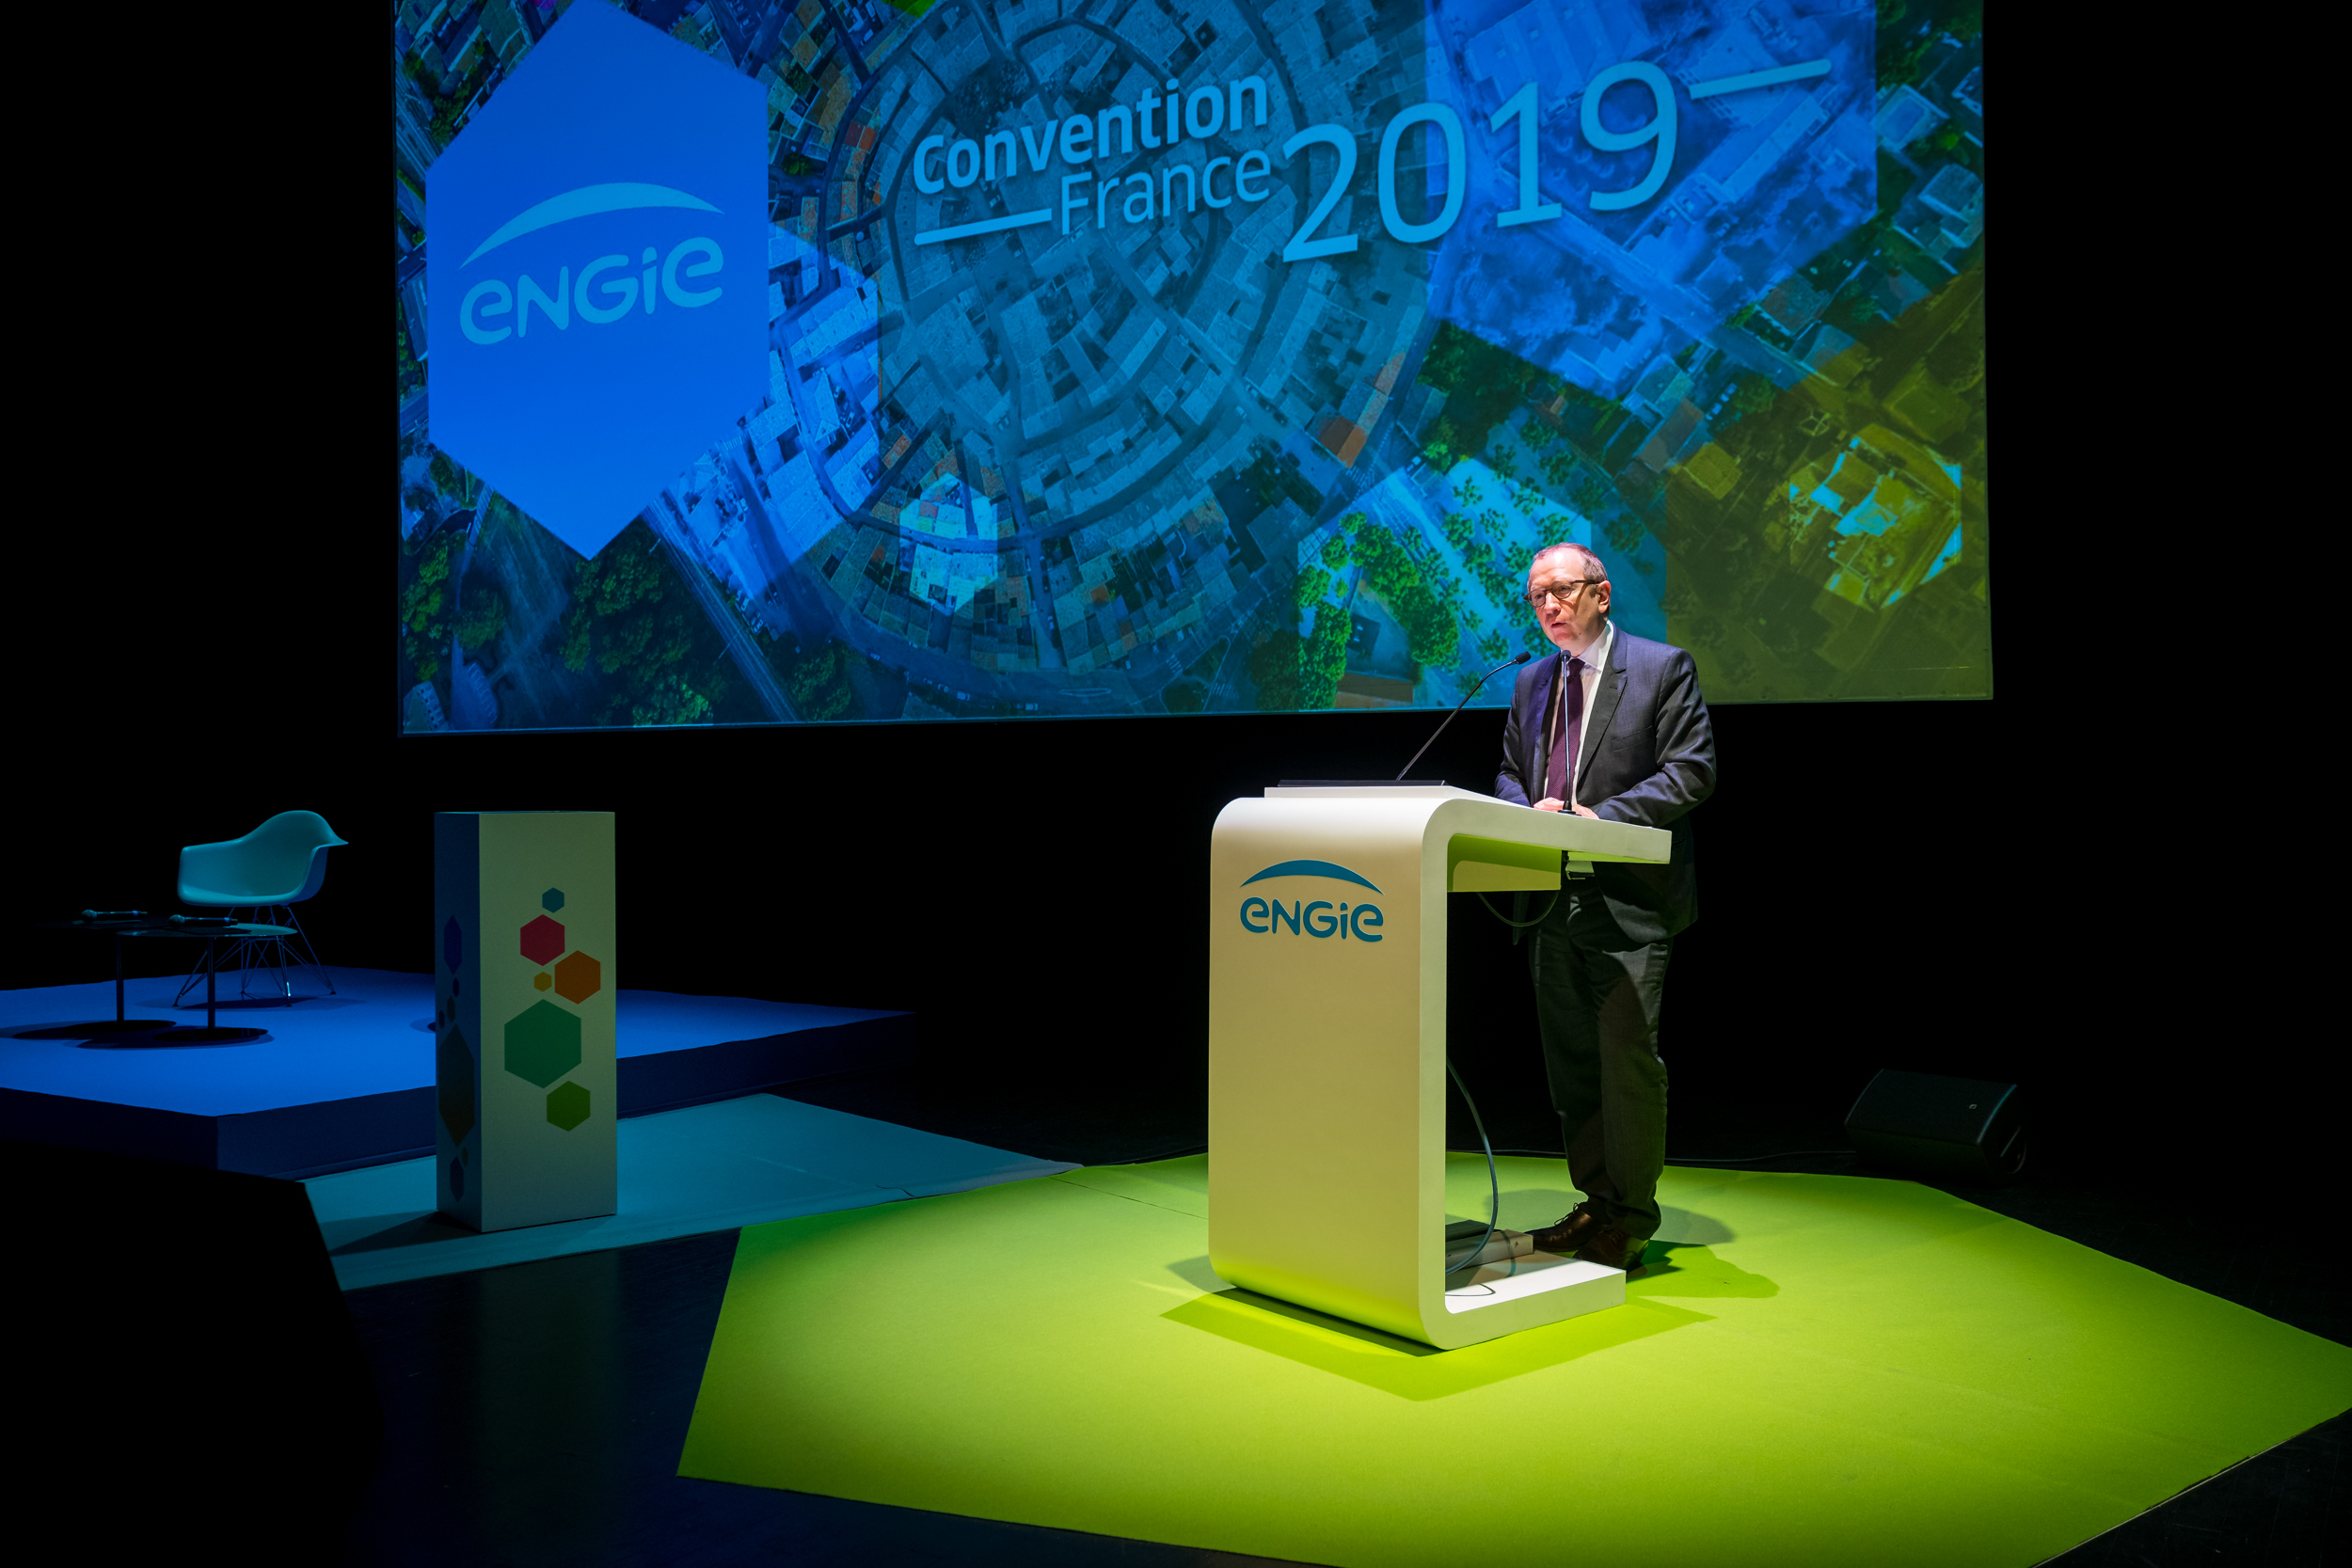 Engie_Convention France_21-05-19_Florian Leger_HD_N°-98.jpg